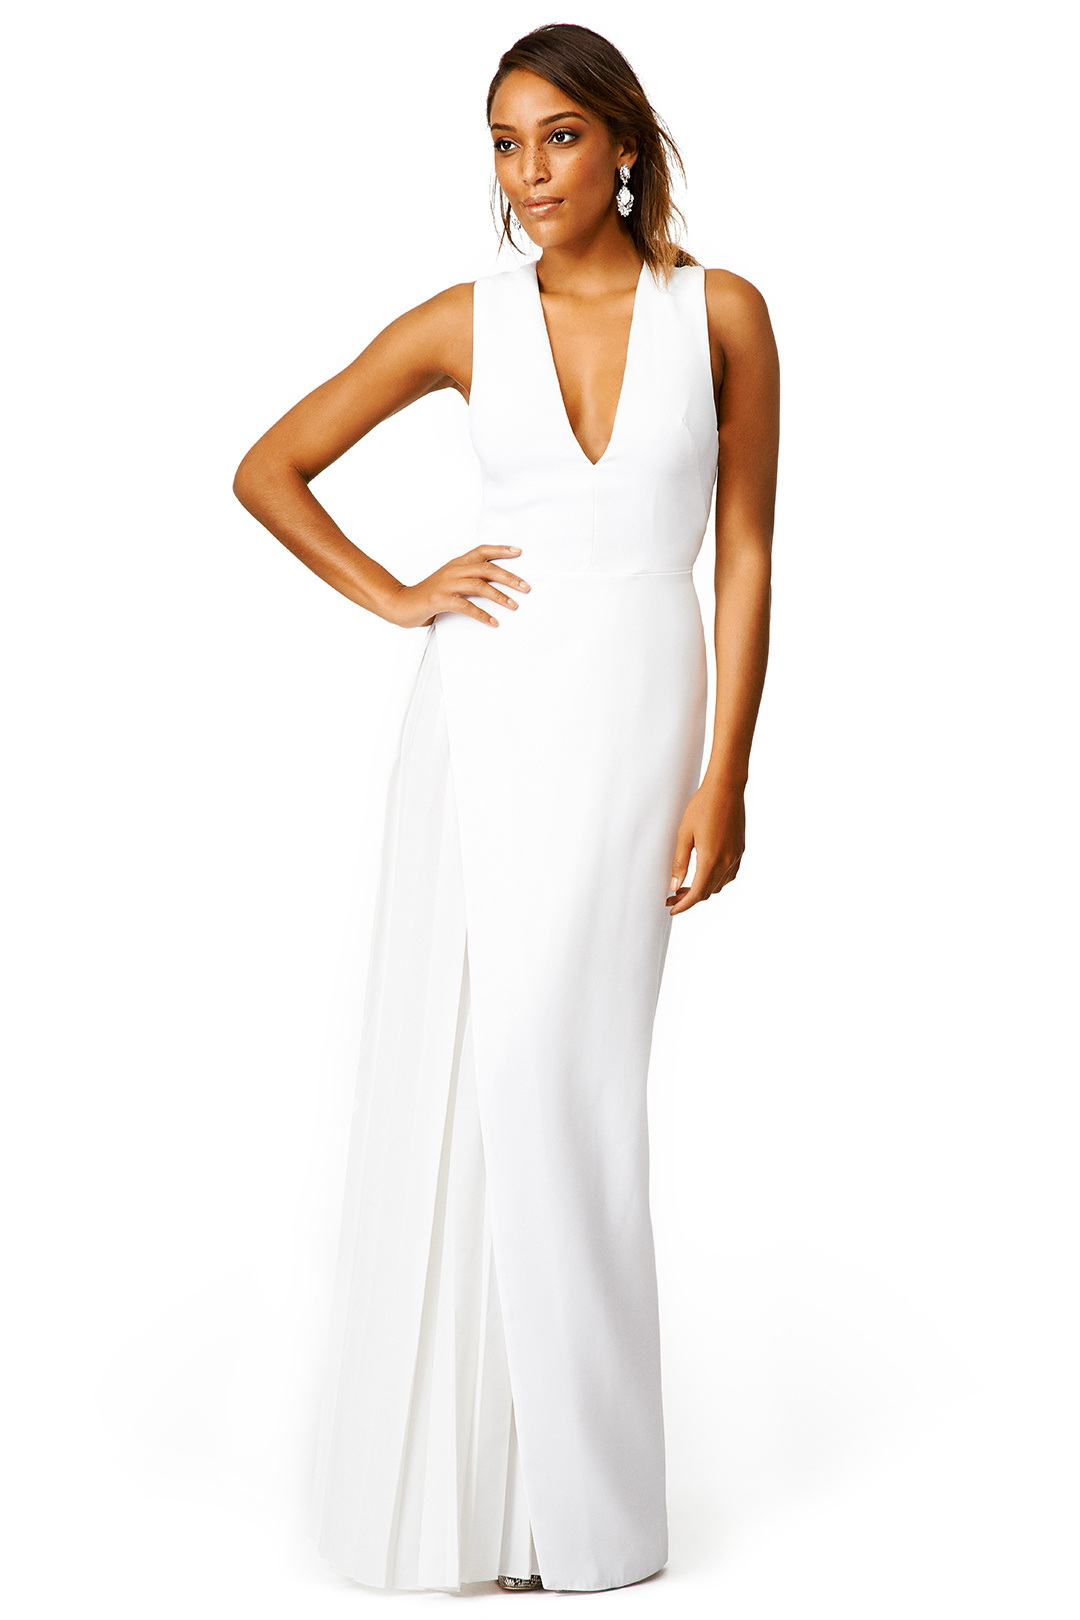 wedding dress under dollars where can i find one jcpenney wedding dresses outlet